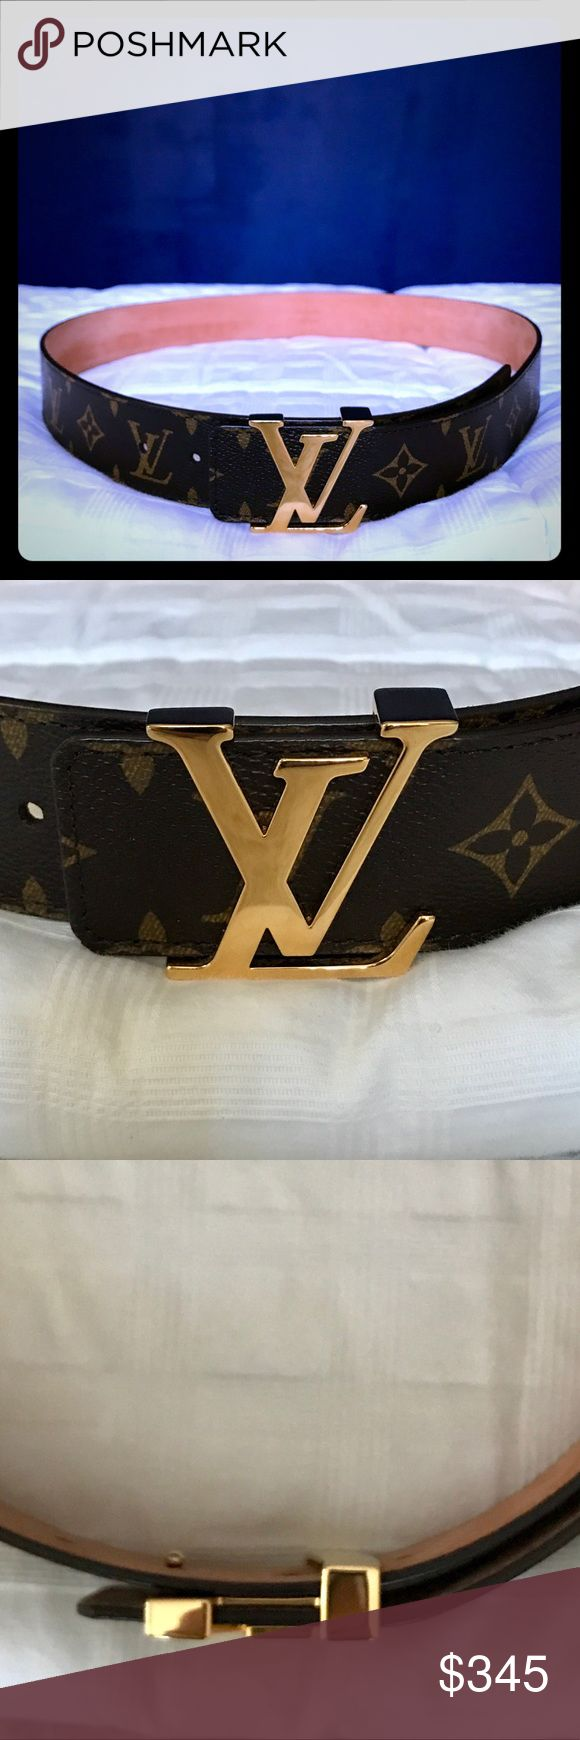 Louis Vuitton 40MM Men's Belt Louis Vuitton 40MM LV Initiales Men's Belt. This belt features a golden buckle with the classic LV initials with Monogram canvas. There are 5 belt holes on this belt (featured in image 6). In excellent condition as it was only worn once. Comes with dust bag (as shown). 100% authentic. No trades – Posh rules only!  Belt width: 40 MM  Product SKU: M9608  Size: 95 CM / 38 Louis Vuitton Accessories Belts